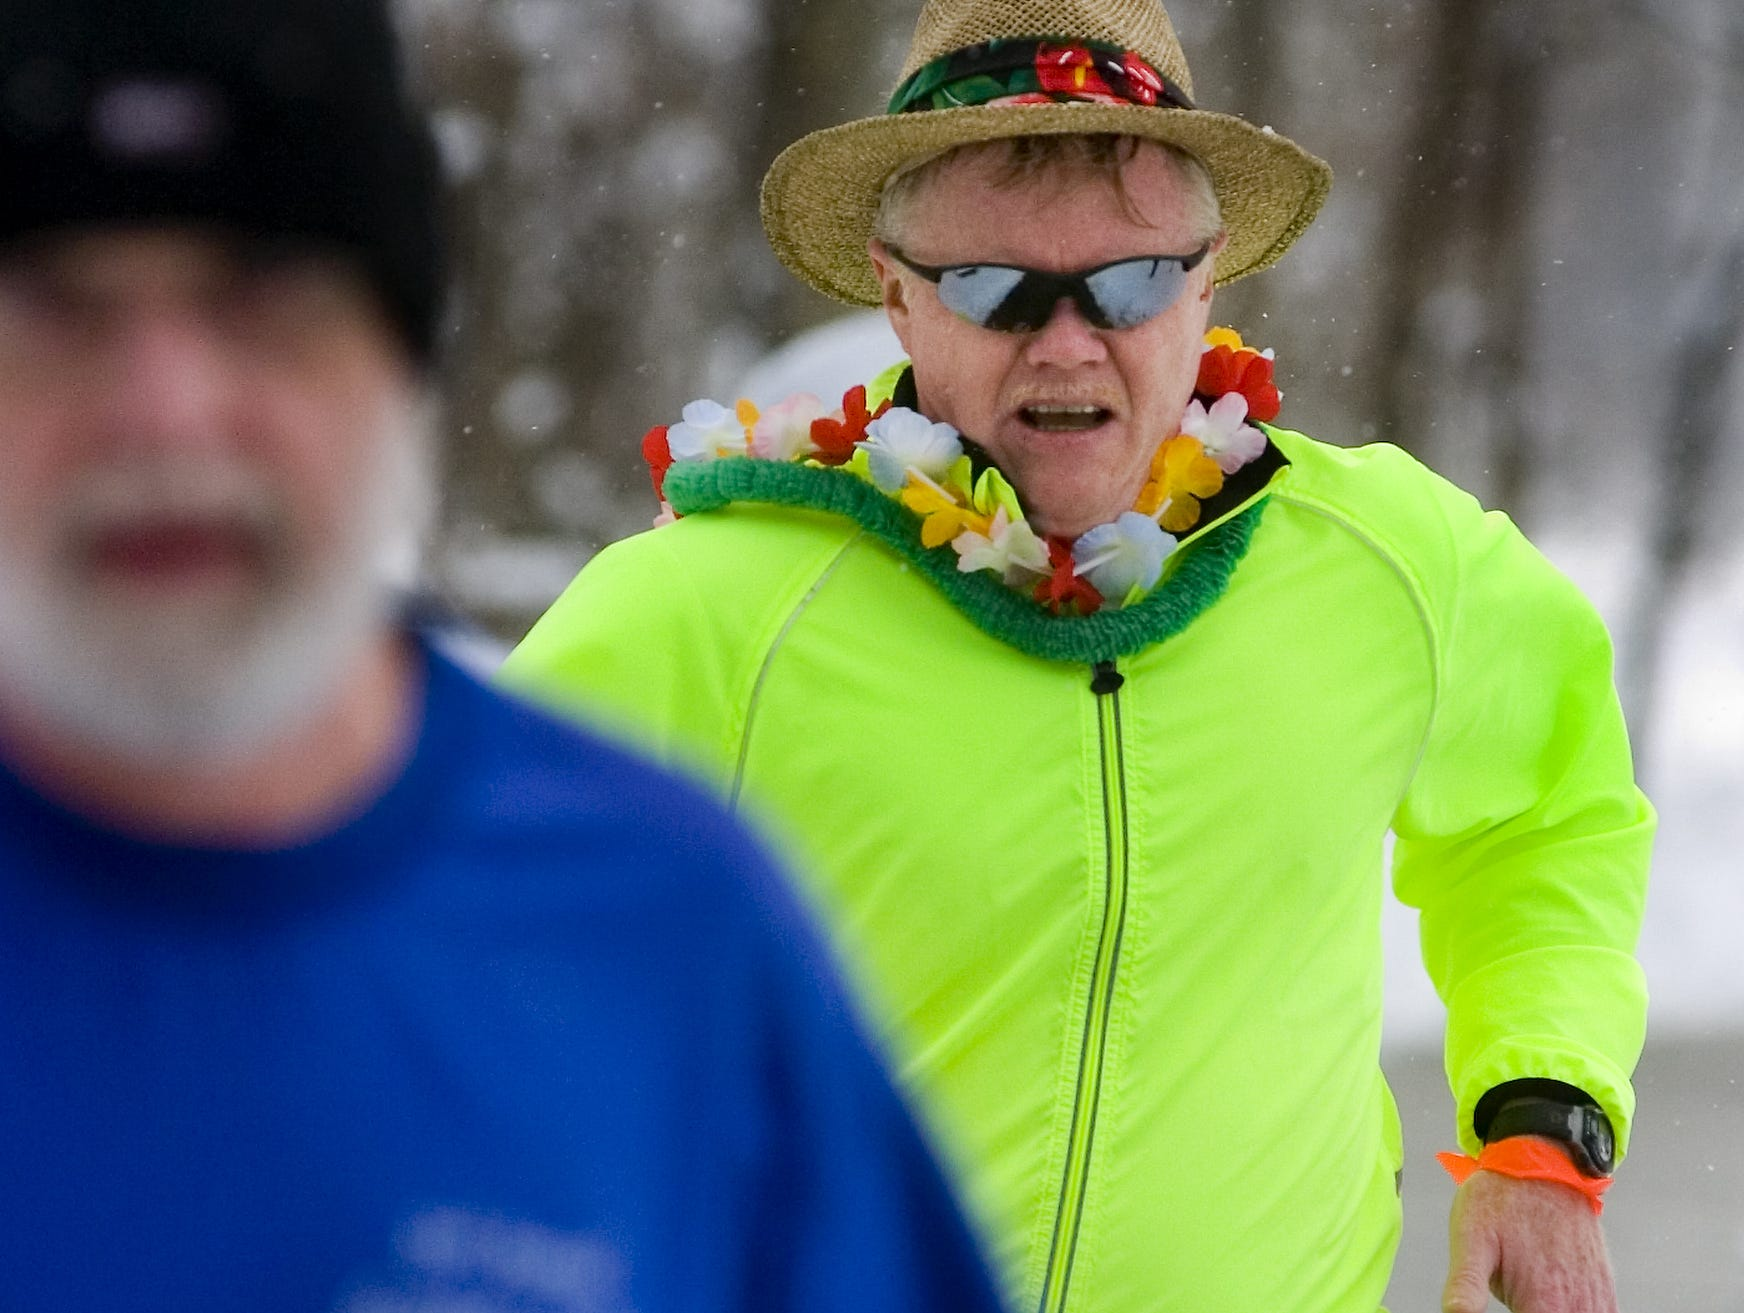 From 2007: Dan Bartschi of Vestal wears leis and a summer hat as he participates in the annual YMCA 5K Resolution Run, held on New Year's Eve at Otsiningo Park. He just returned from Florida and wanted to bring the warmth with him.